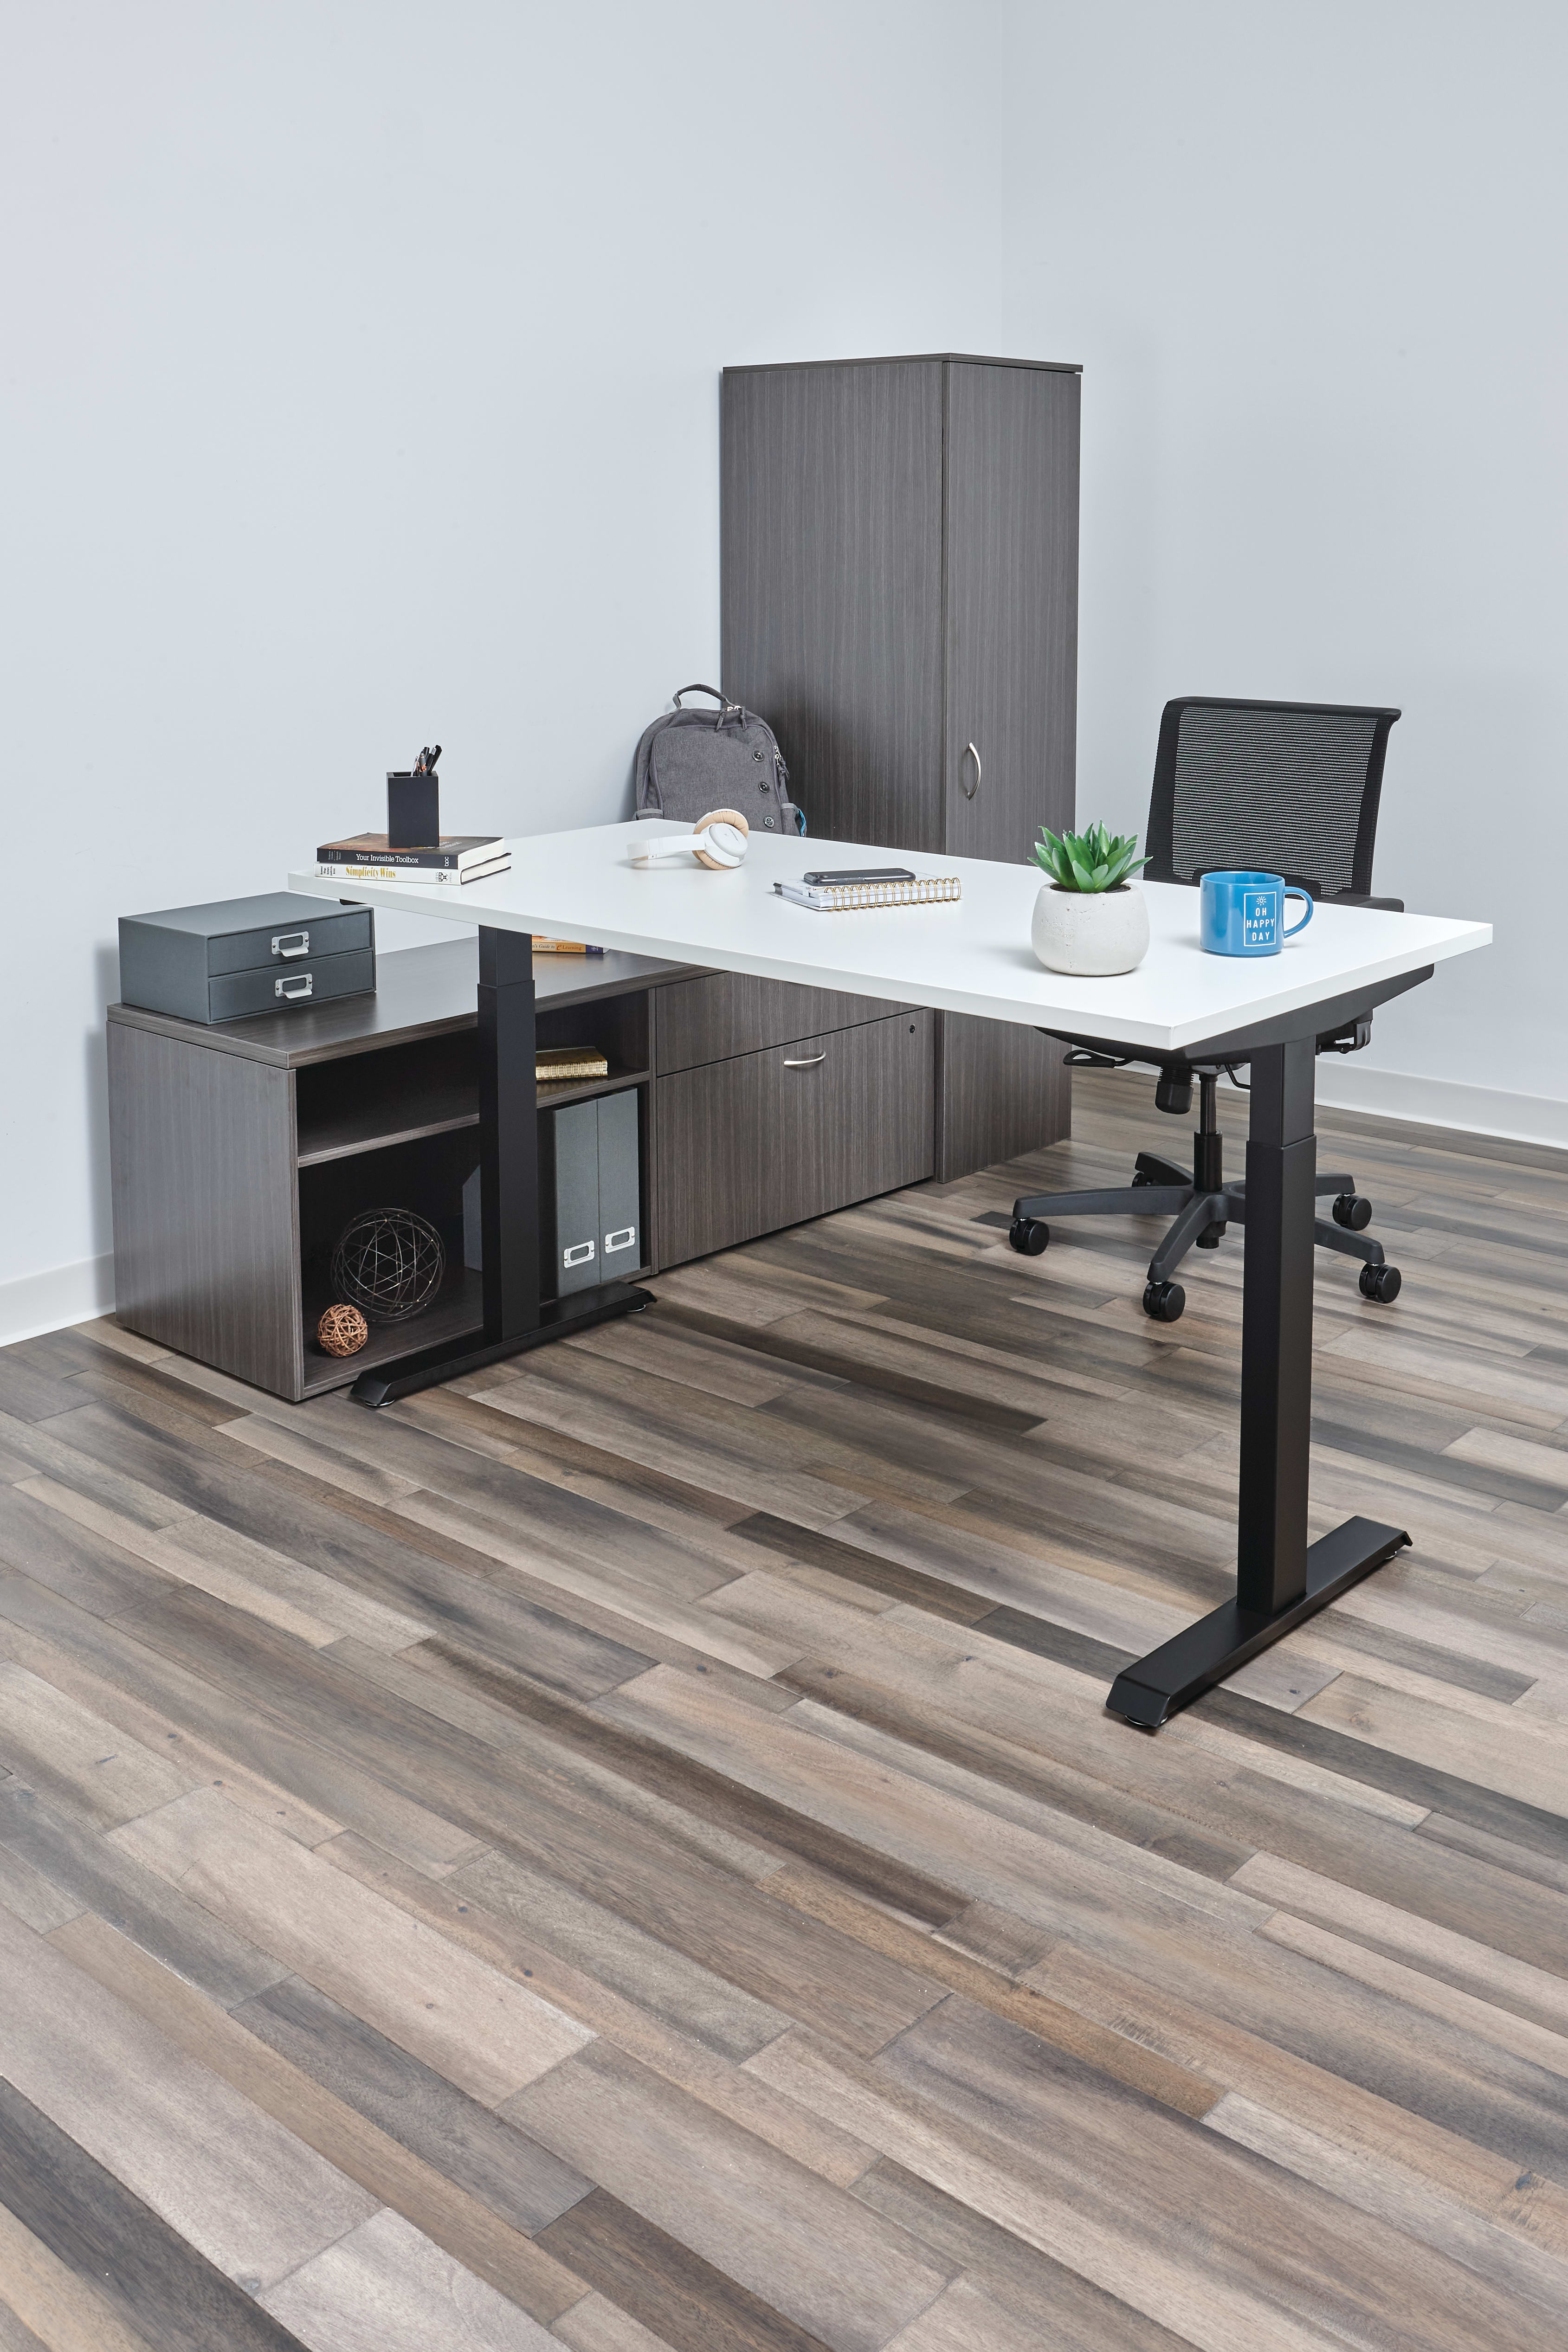 Mod desk in Slate Teak laminate with Coordinate height adjustable table and Convergence seating.